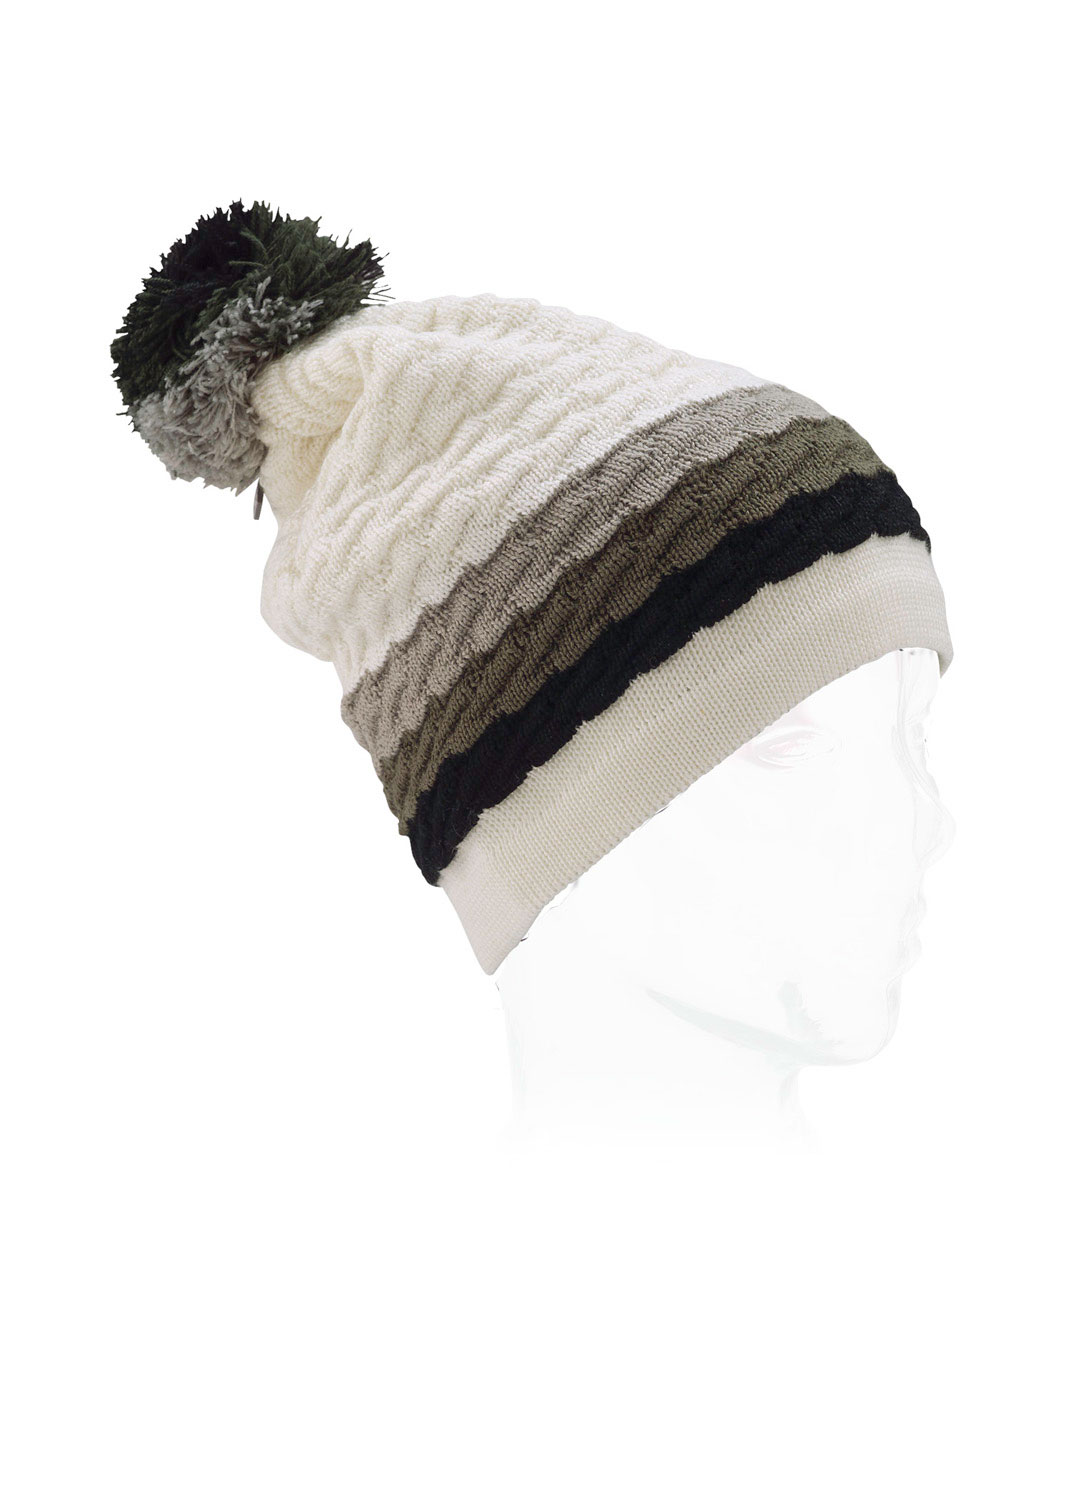 Snowboard Burton has truly outdone themselves with this beanie. A tri-color poofball adorns the top of this generously cut hat, with three cable knit stripes around the forehead. The generous cut gives you that slouchy look that's so in demand these days (plus lots of lee room to pull the thing down over your ears when the weather demands it). The Burton logo is very tastefully placed in the poof ball itself. Why not give this beanie a spin this cold weather season?Key Features of the Burton Love Beanie: 60% Acrylic, 40% Merino Wool Horizontal Cable Striped Beanie Burton Logo Charm at Pom Slouchy Fit - $17.95